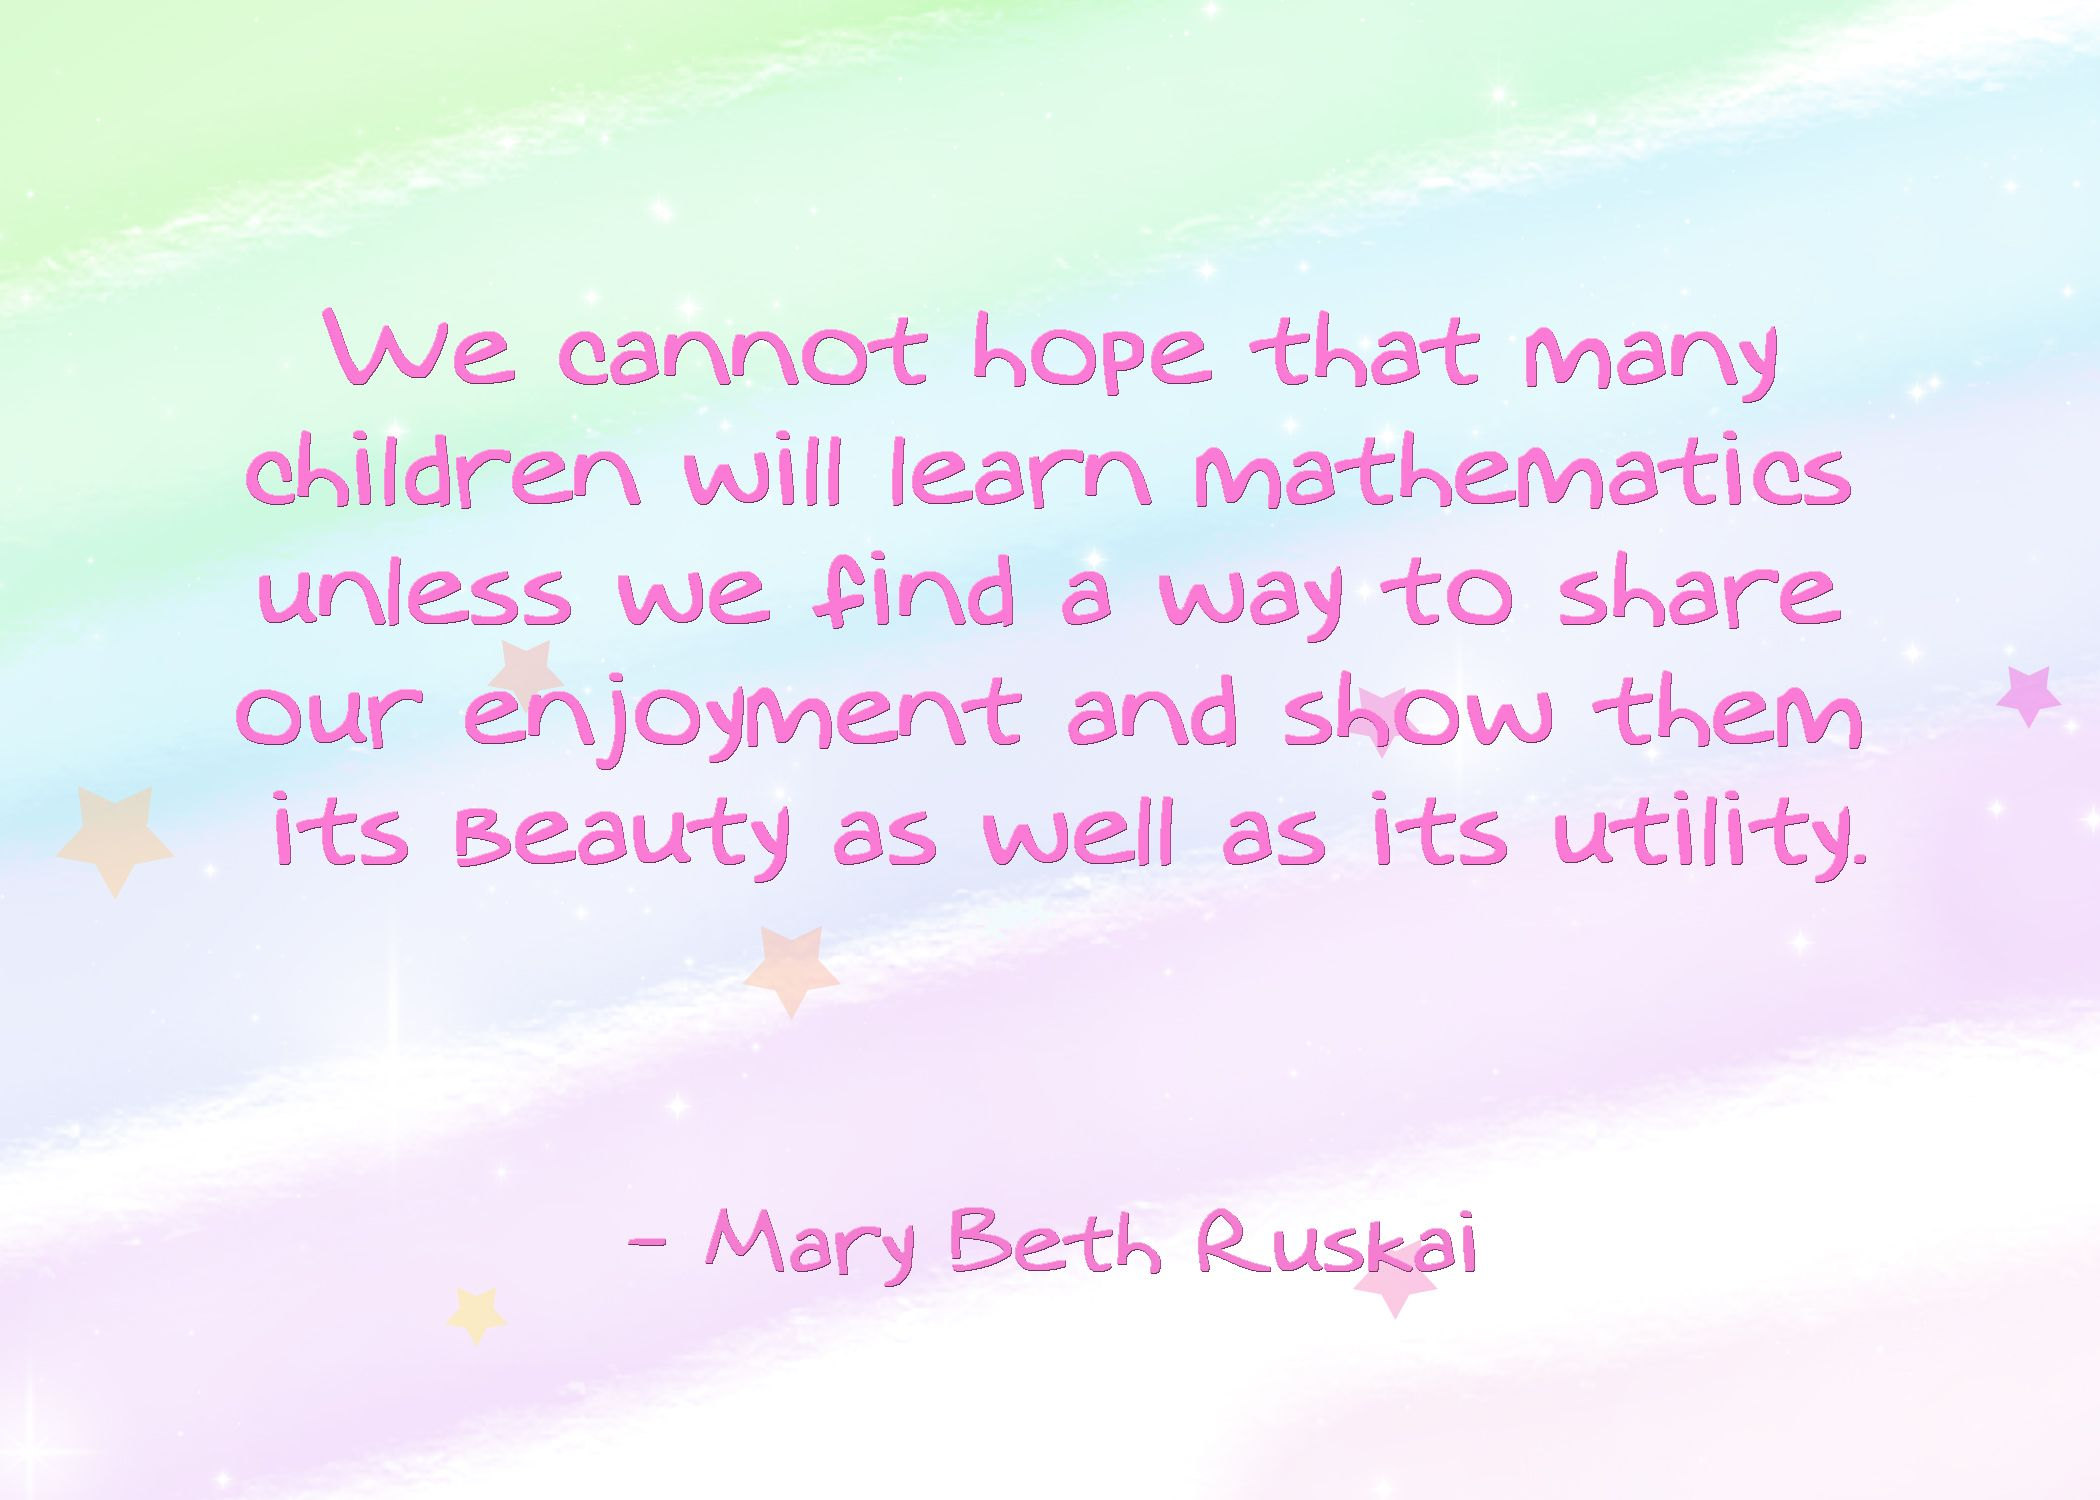 Quotes Math Learning: We Cannot Hope That Many Children Will Learn Mathematics